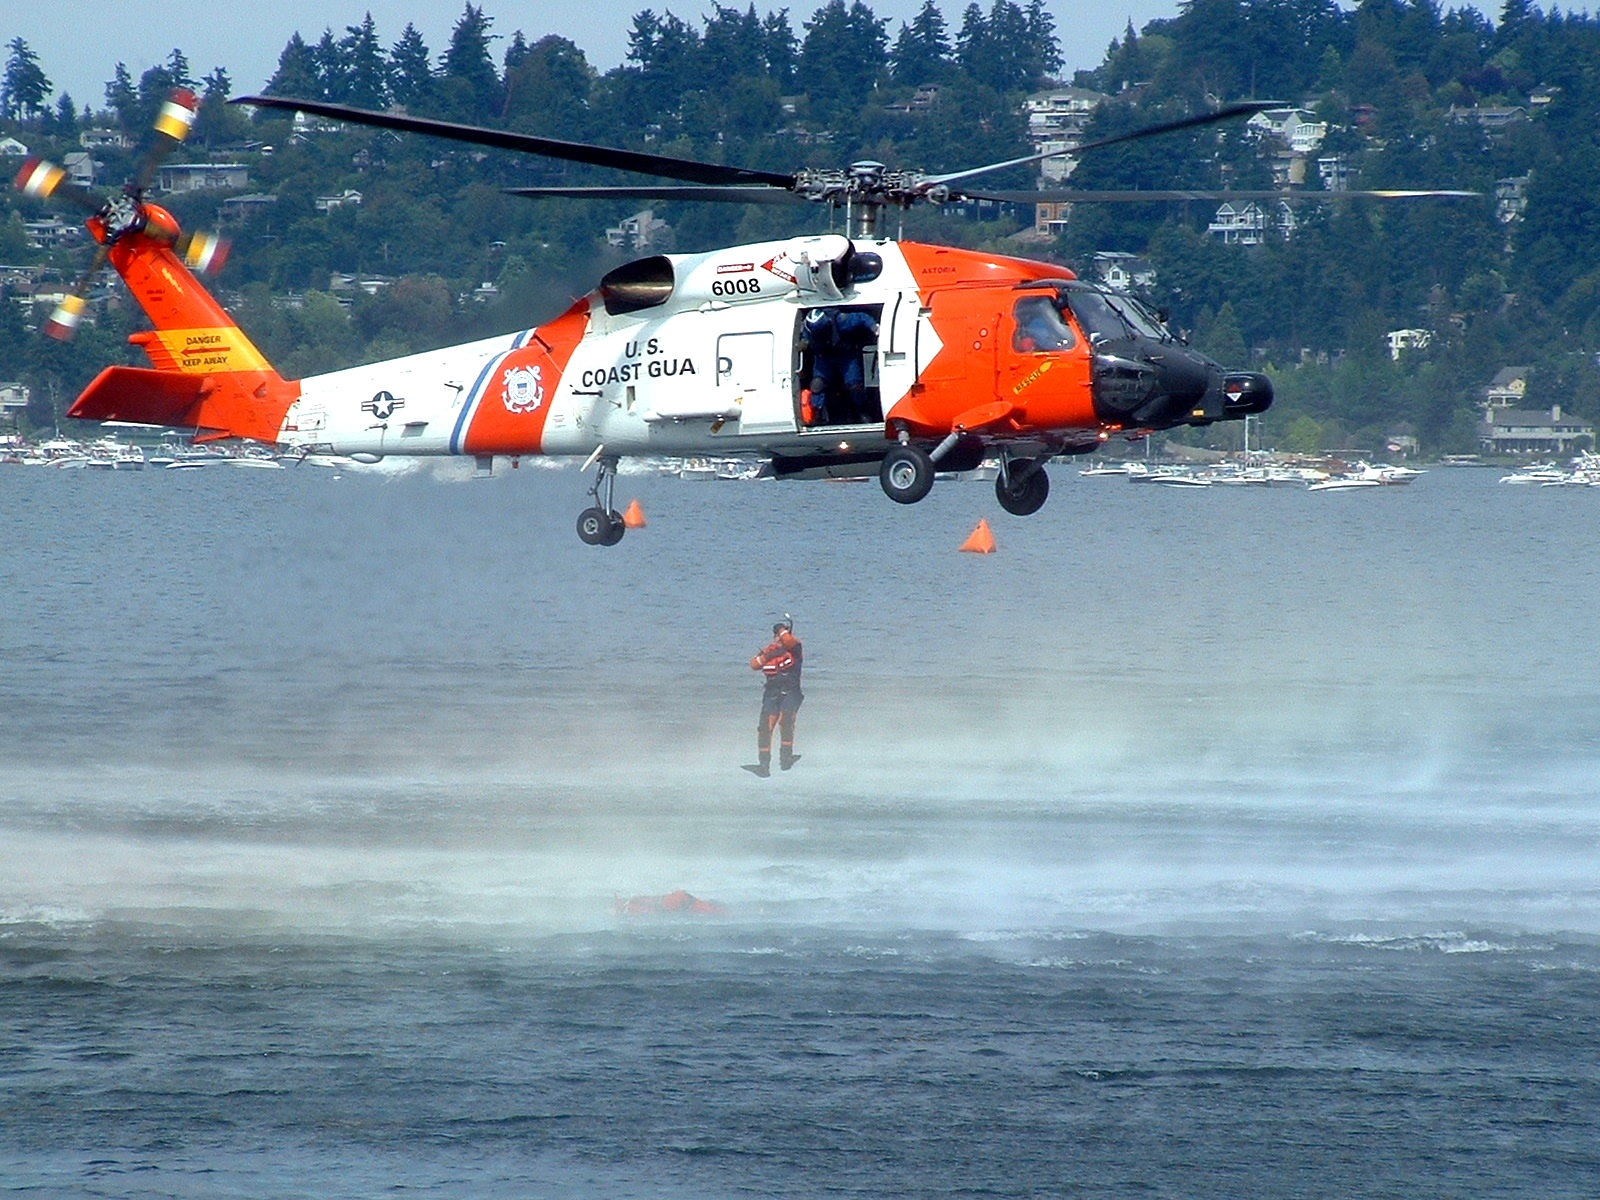 A Coast Guard HH-60J Jayhawk deploys a swimmer. Helicopters are often the preferred platform for conducting rapid rescue operations because of their ability to hover and retrieve casualties.